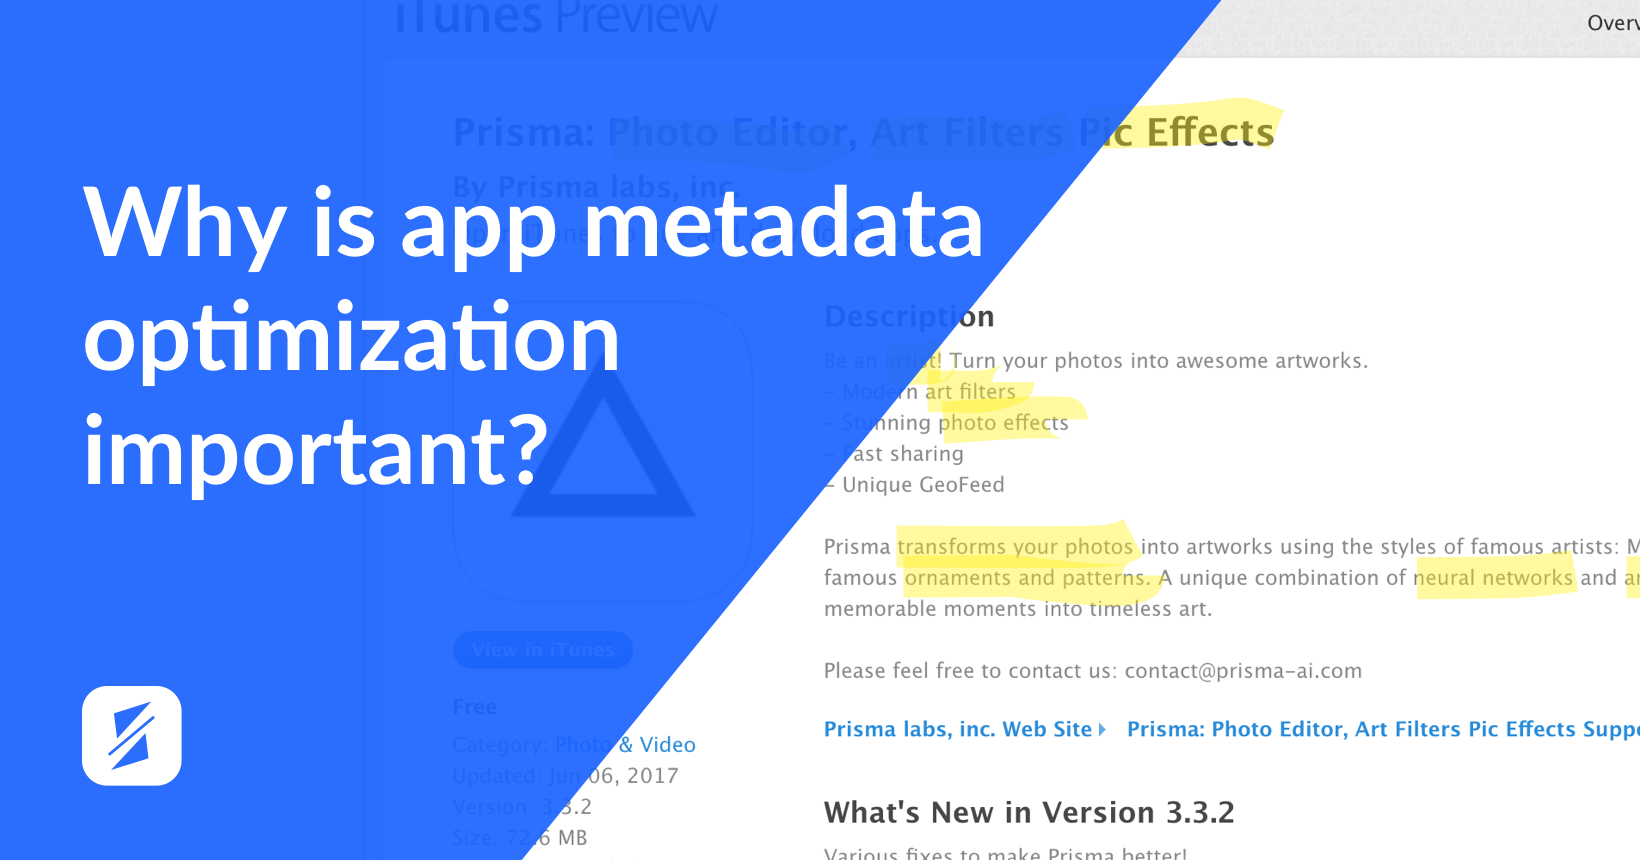 2 app metadate optimization splitmetrics